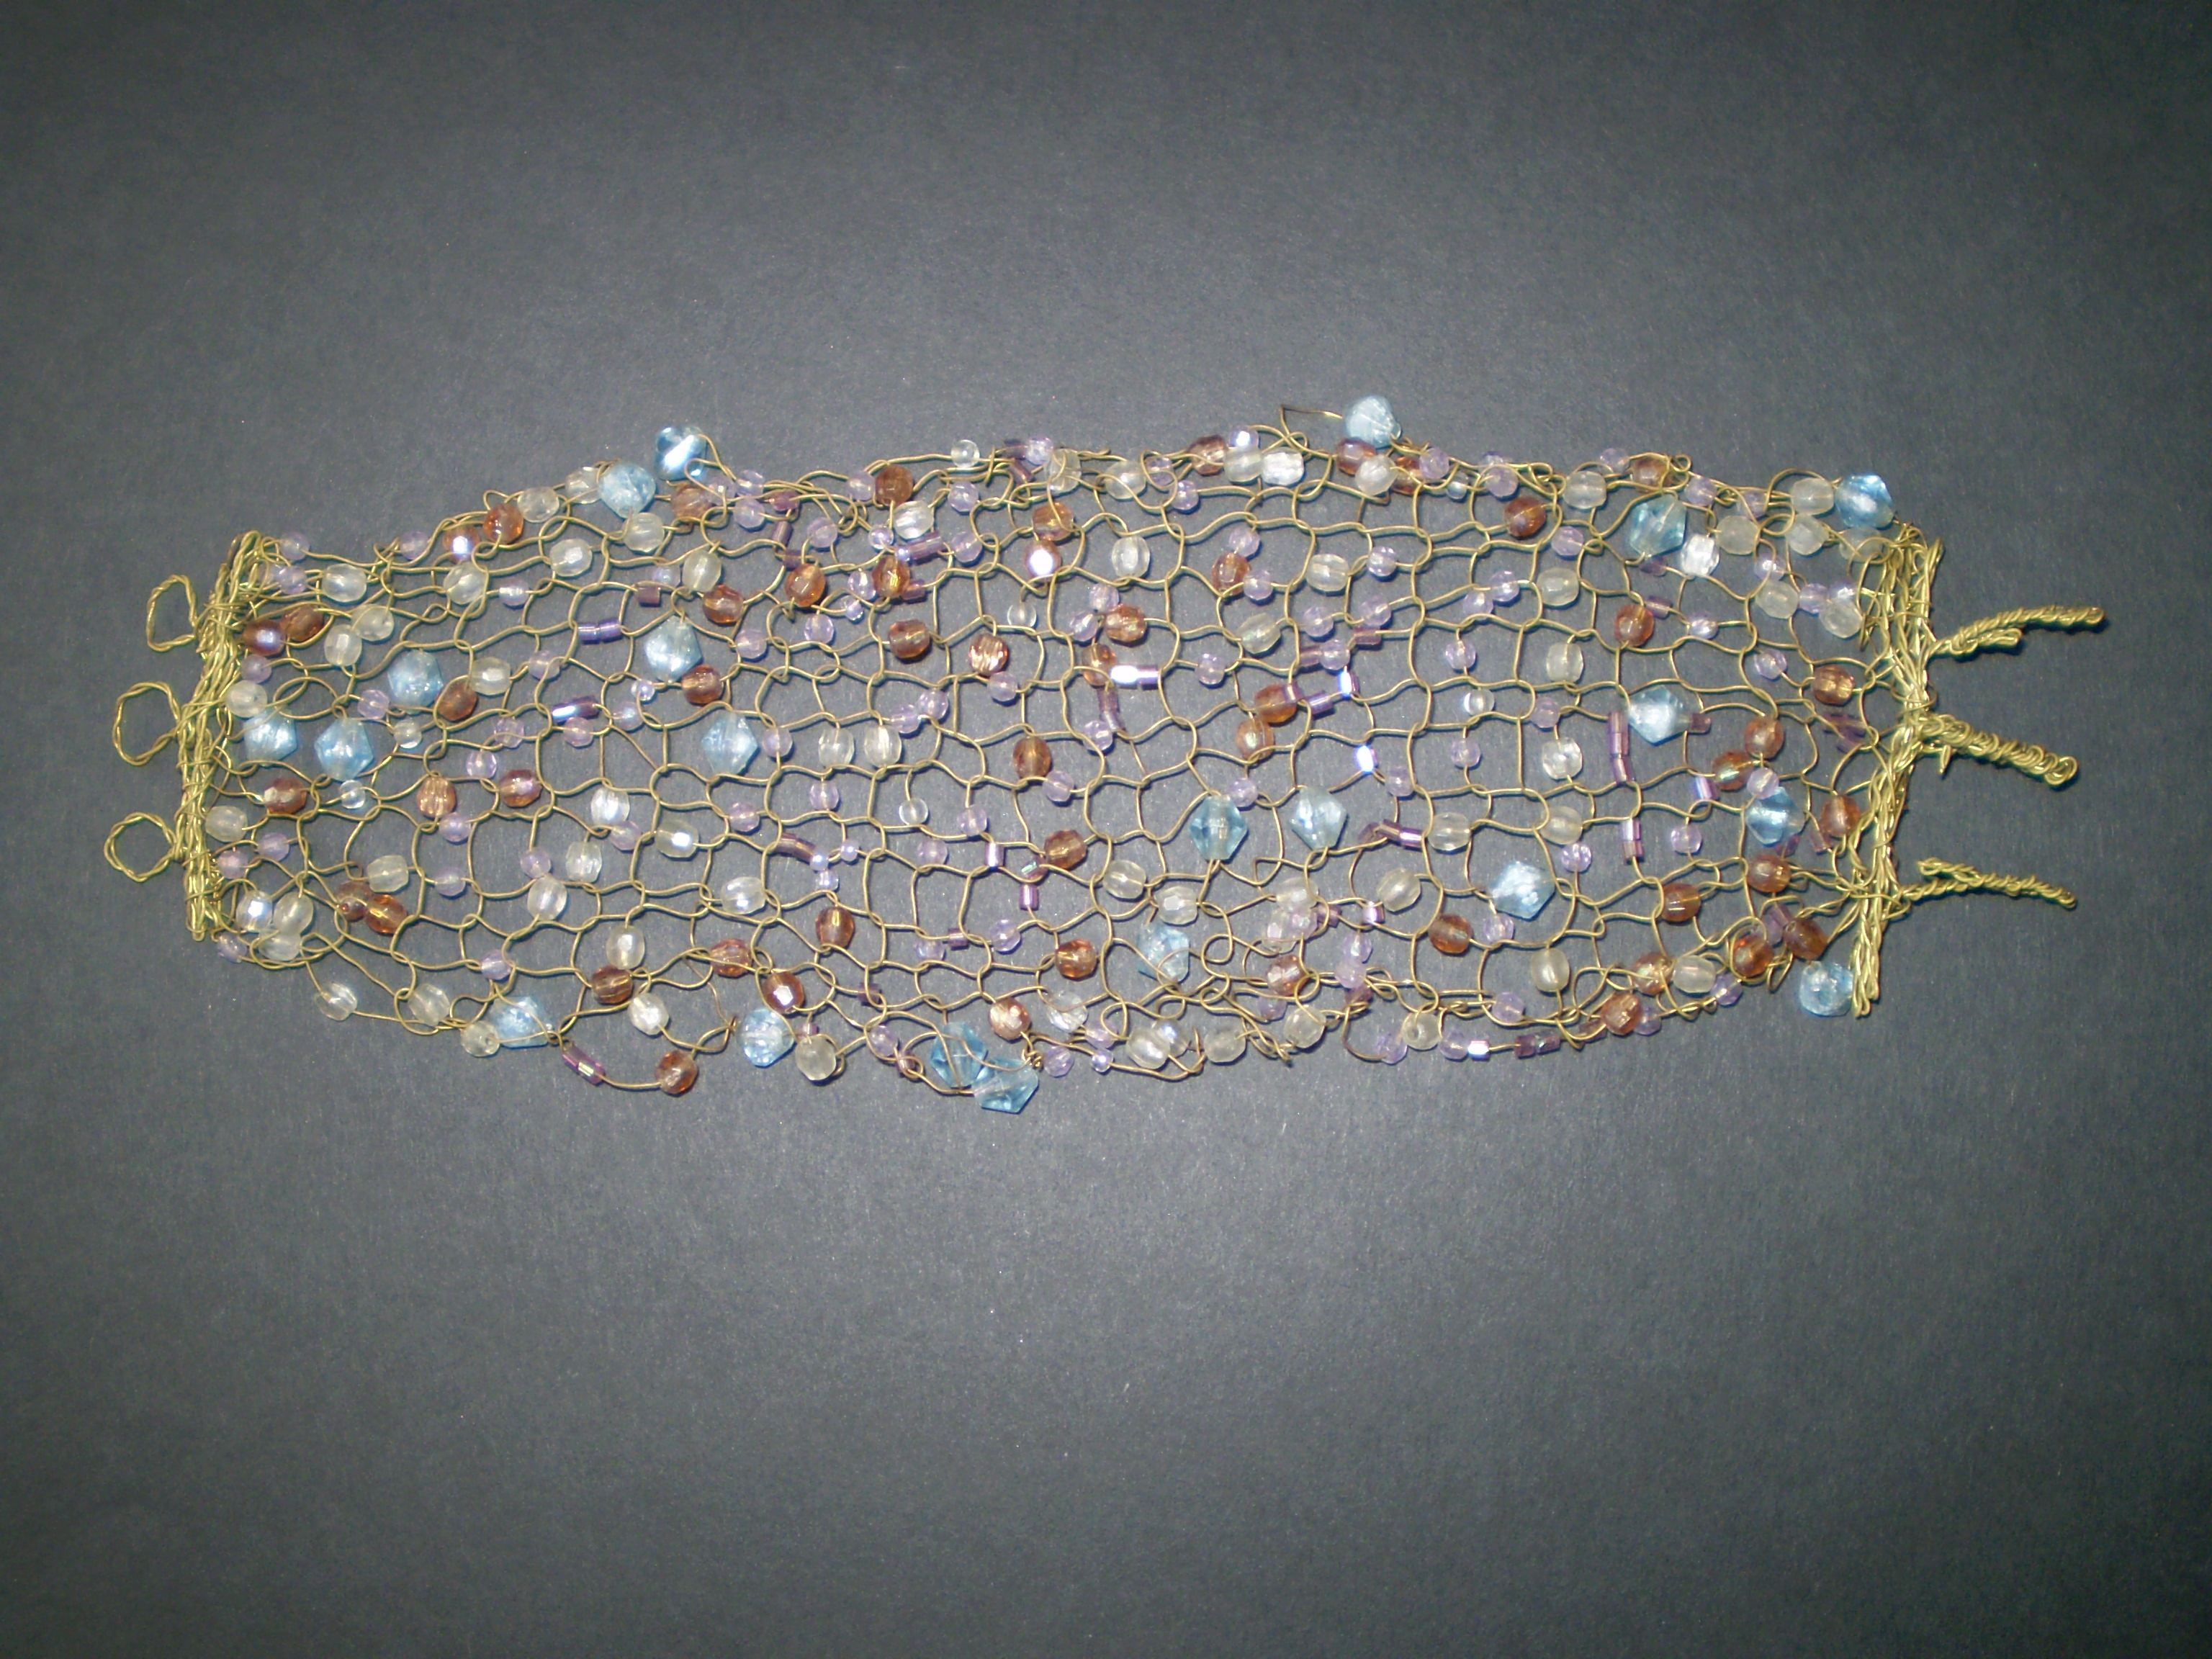 Knitting with wire and beads by Pendraia on DeviantArt